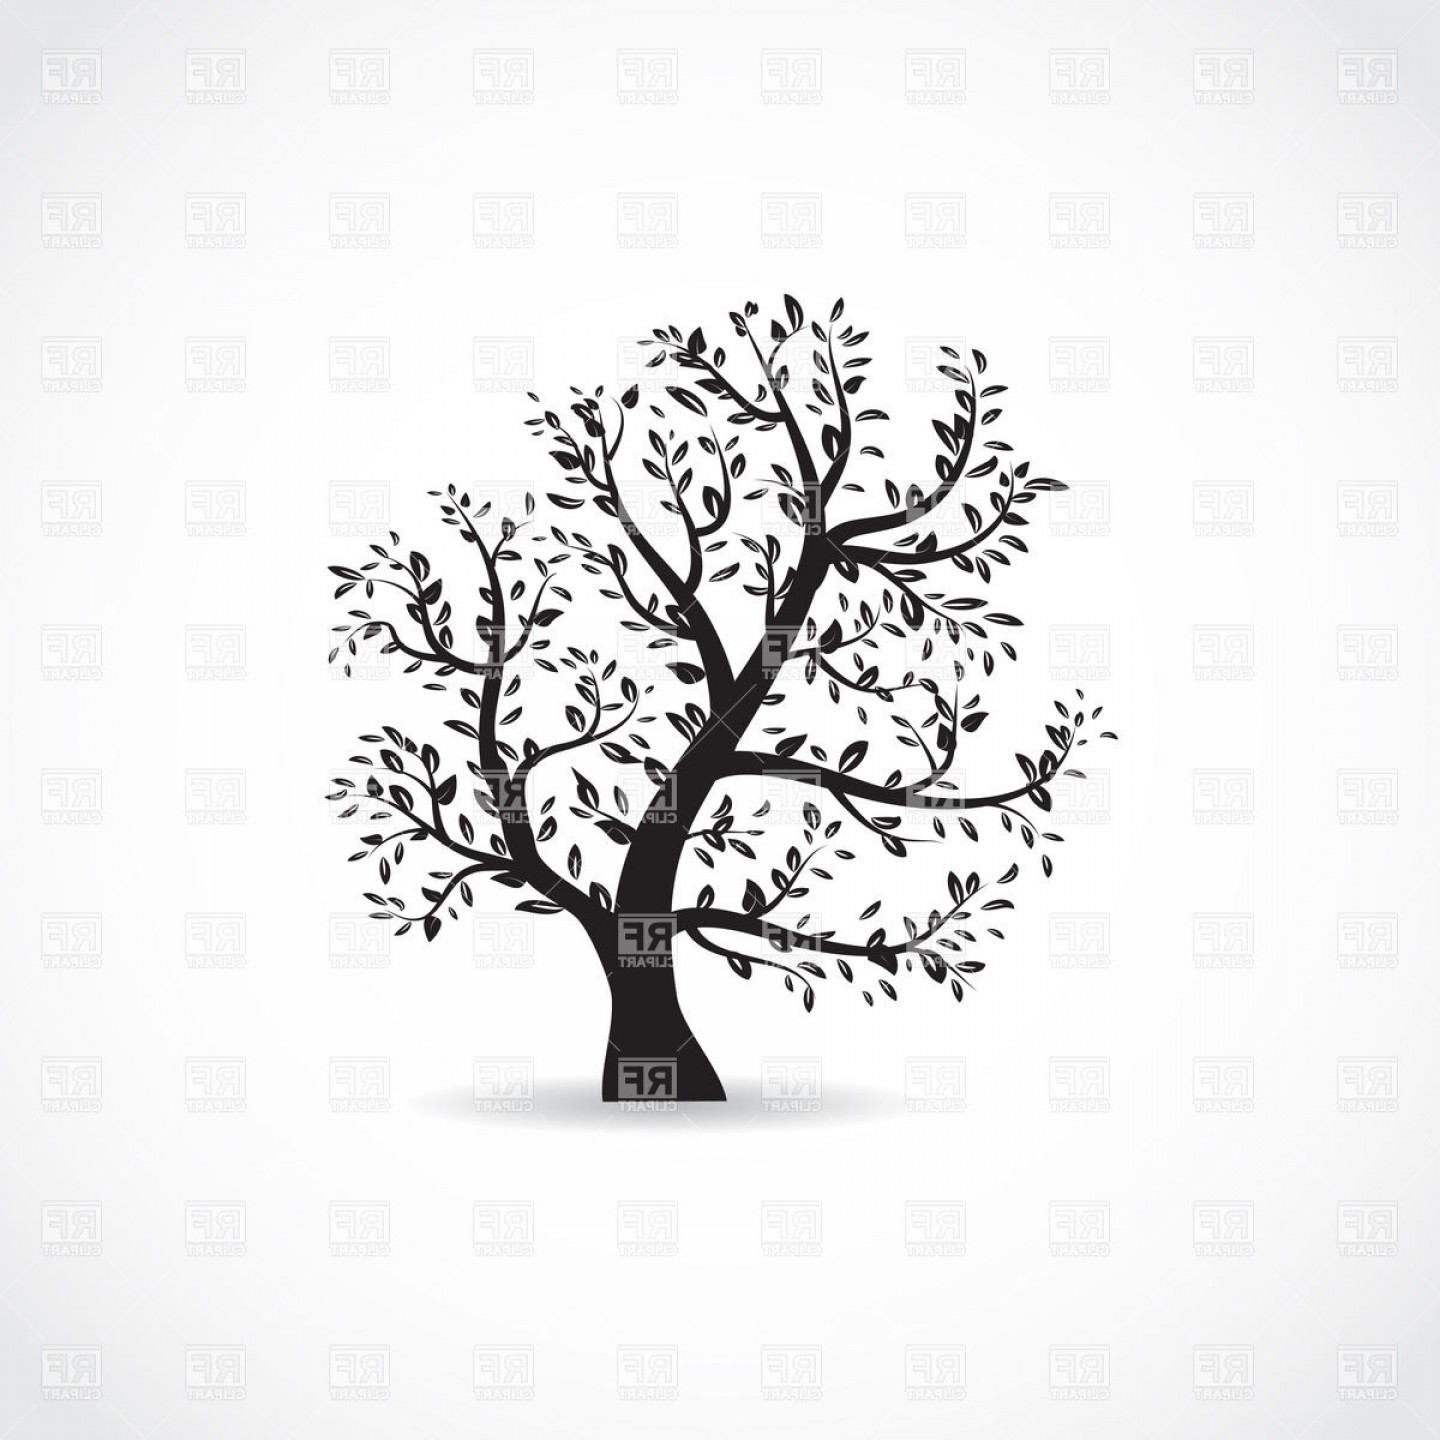 Tree Silhouette Vector Clip Art: Leaf Bearing Tree Black Silhouette Vector Clipart